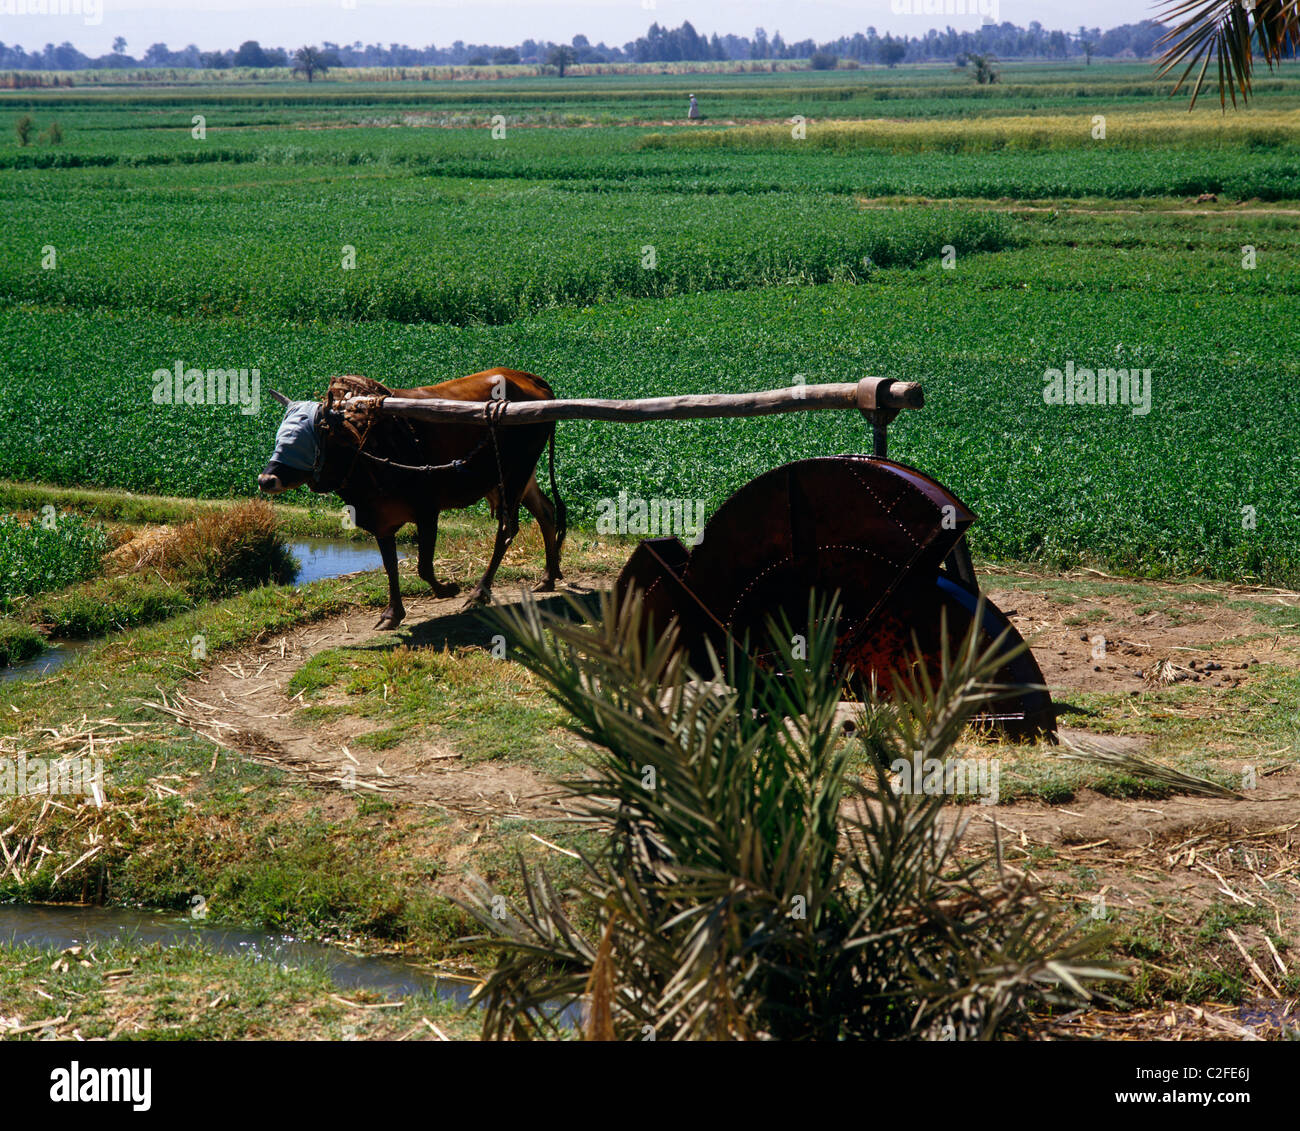 Irrigation Nile Valley Egypt Stock Photo Royalty Free Image